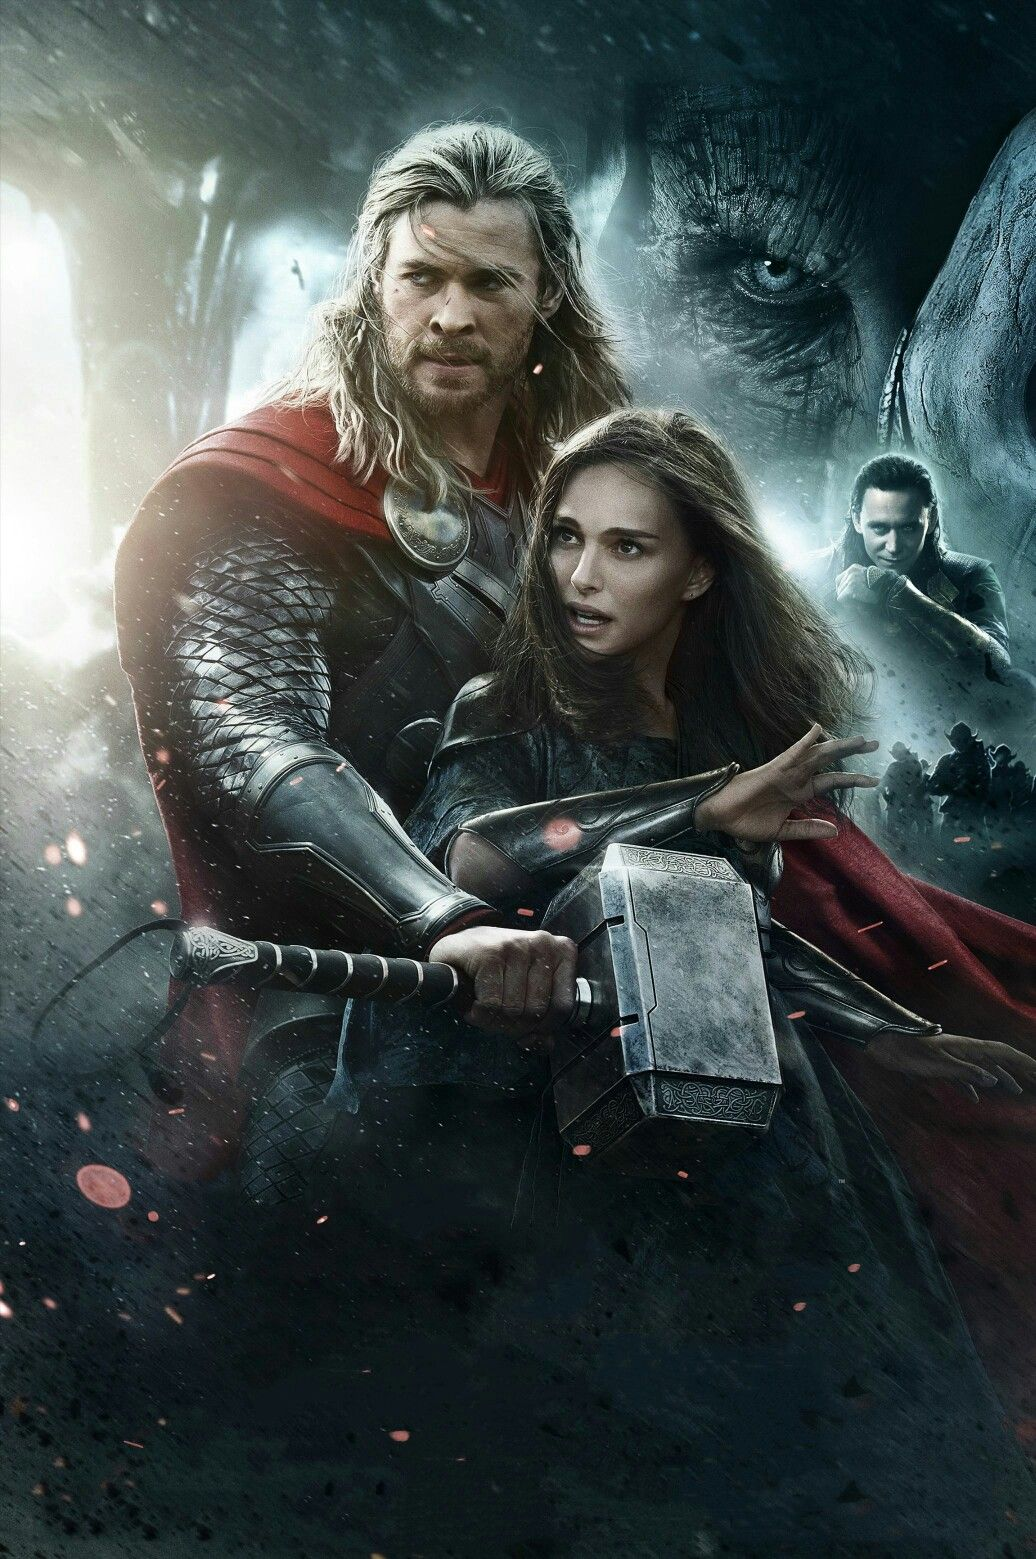 Thor The Dark World Textless Movie Poster The Dark World World Movies Watch Thor